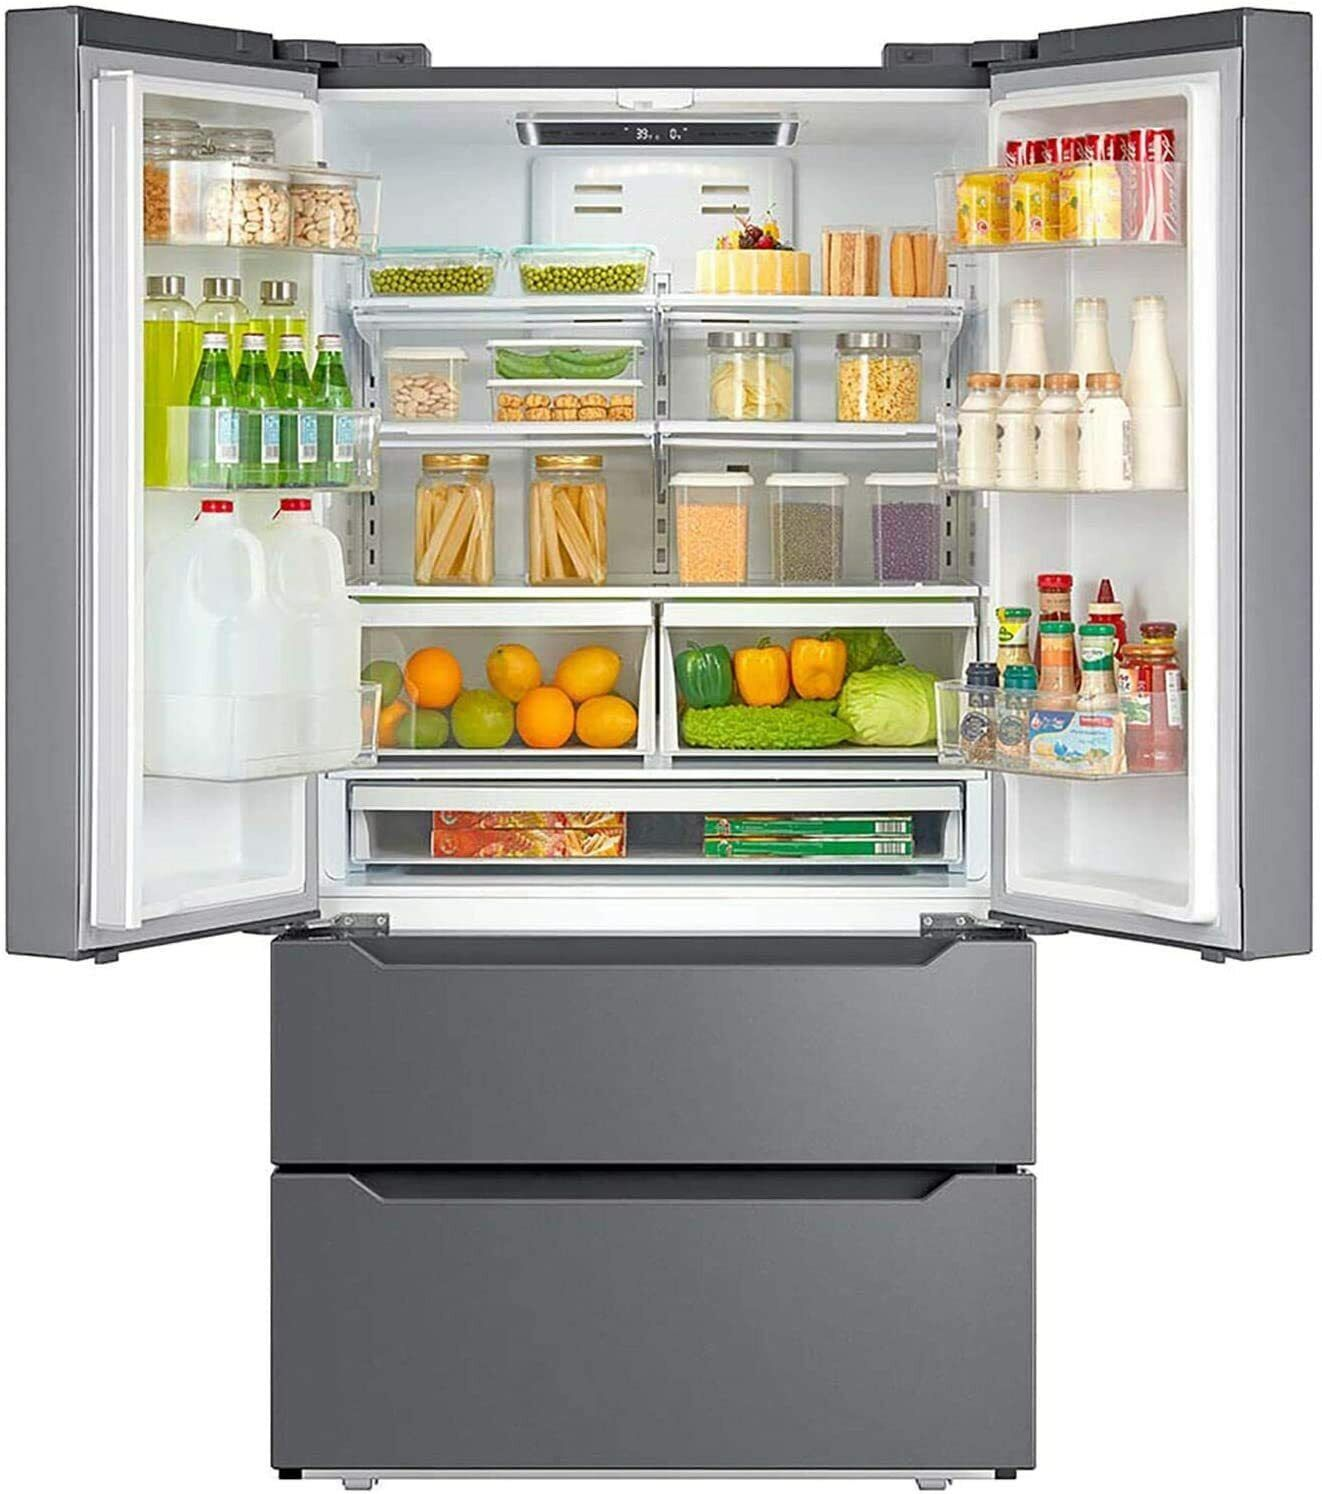 Counter 22.5 CU FT Depth Fridge French Door Refrigerator Fre